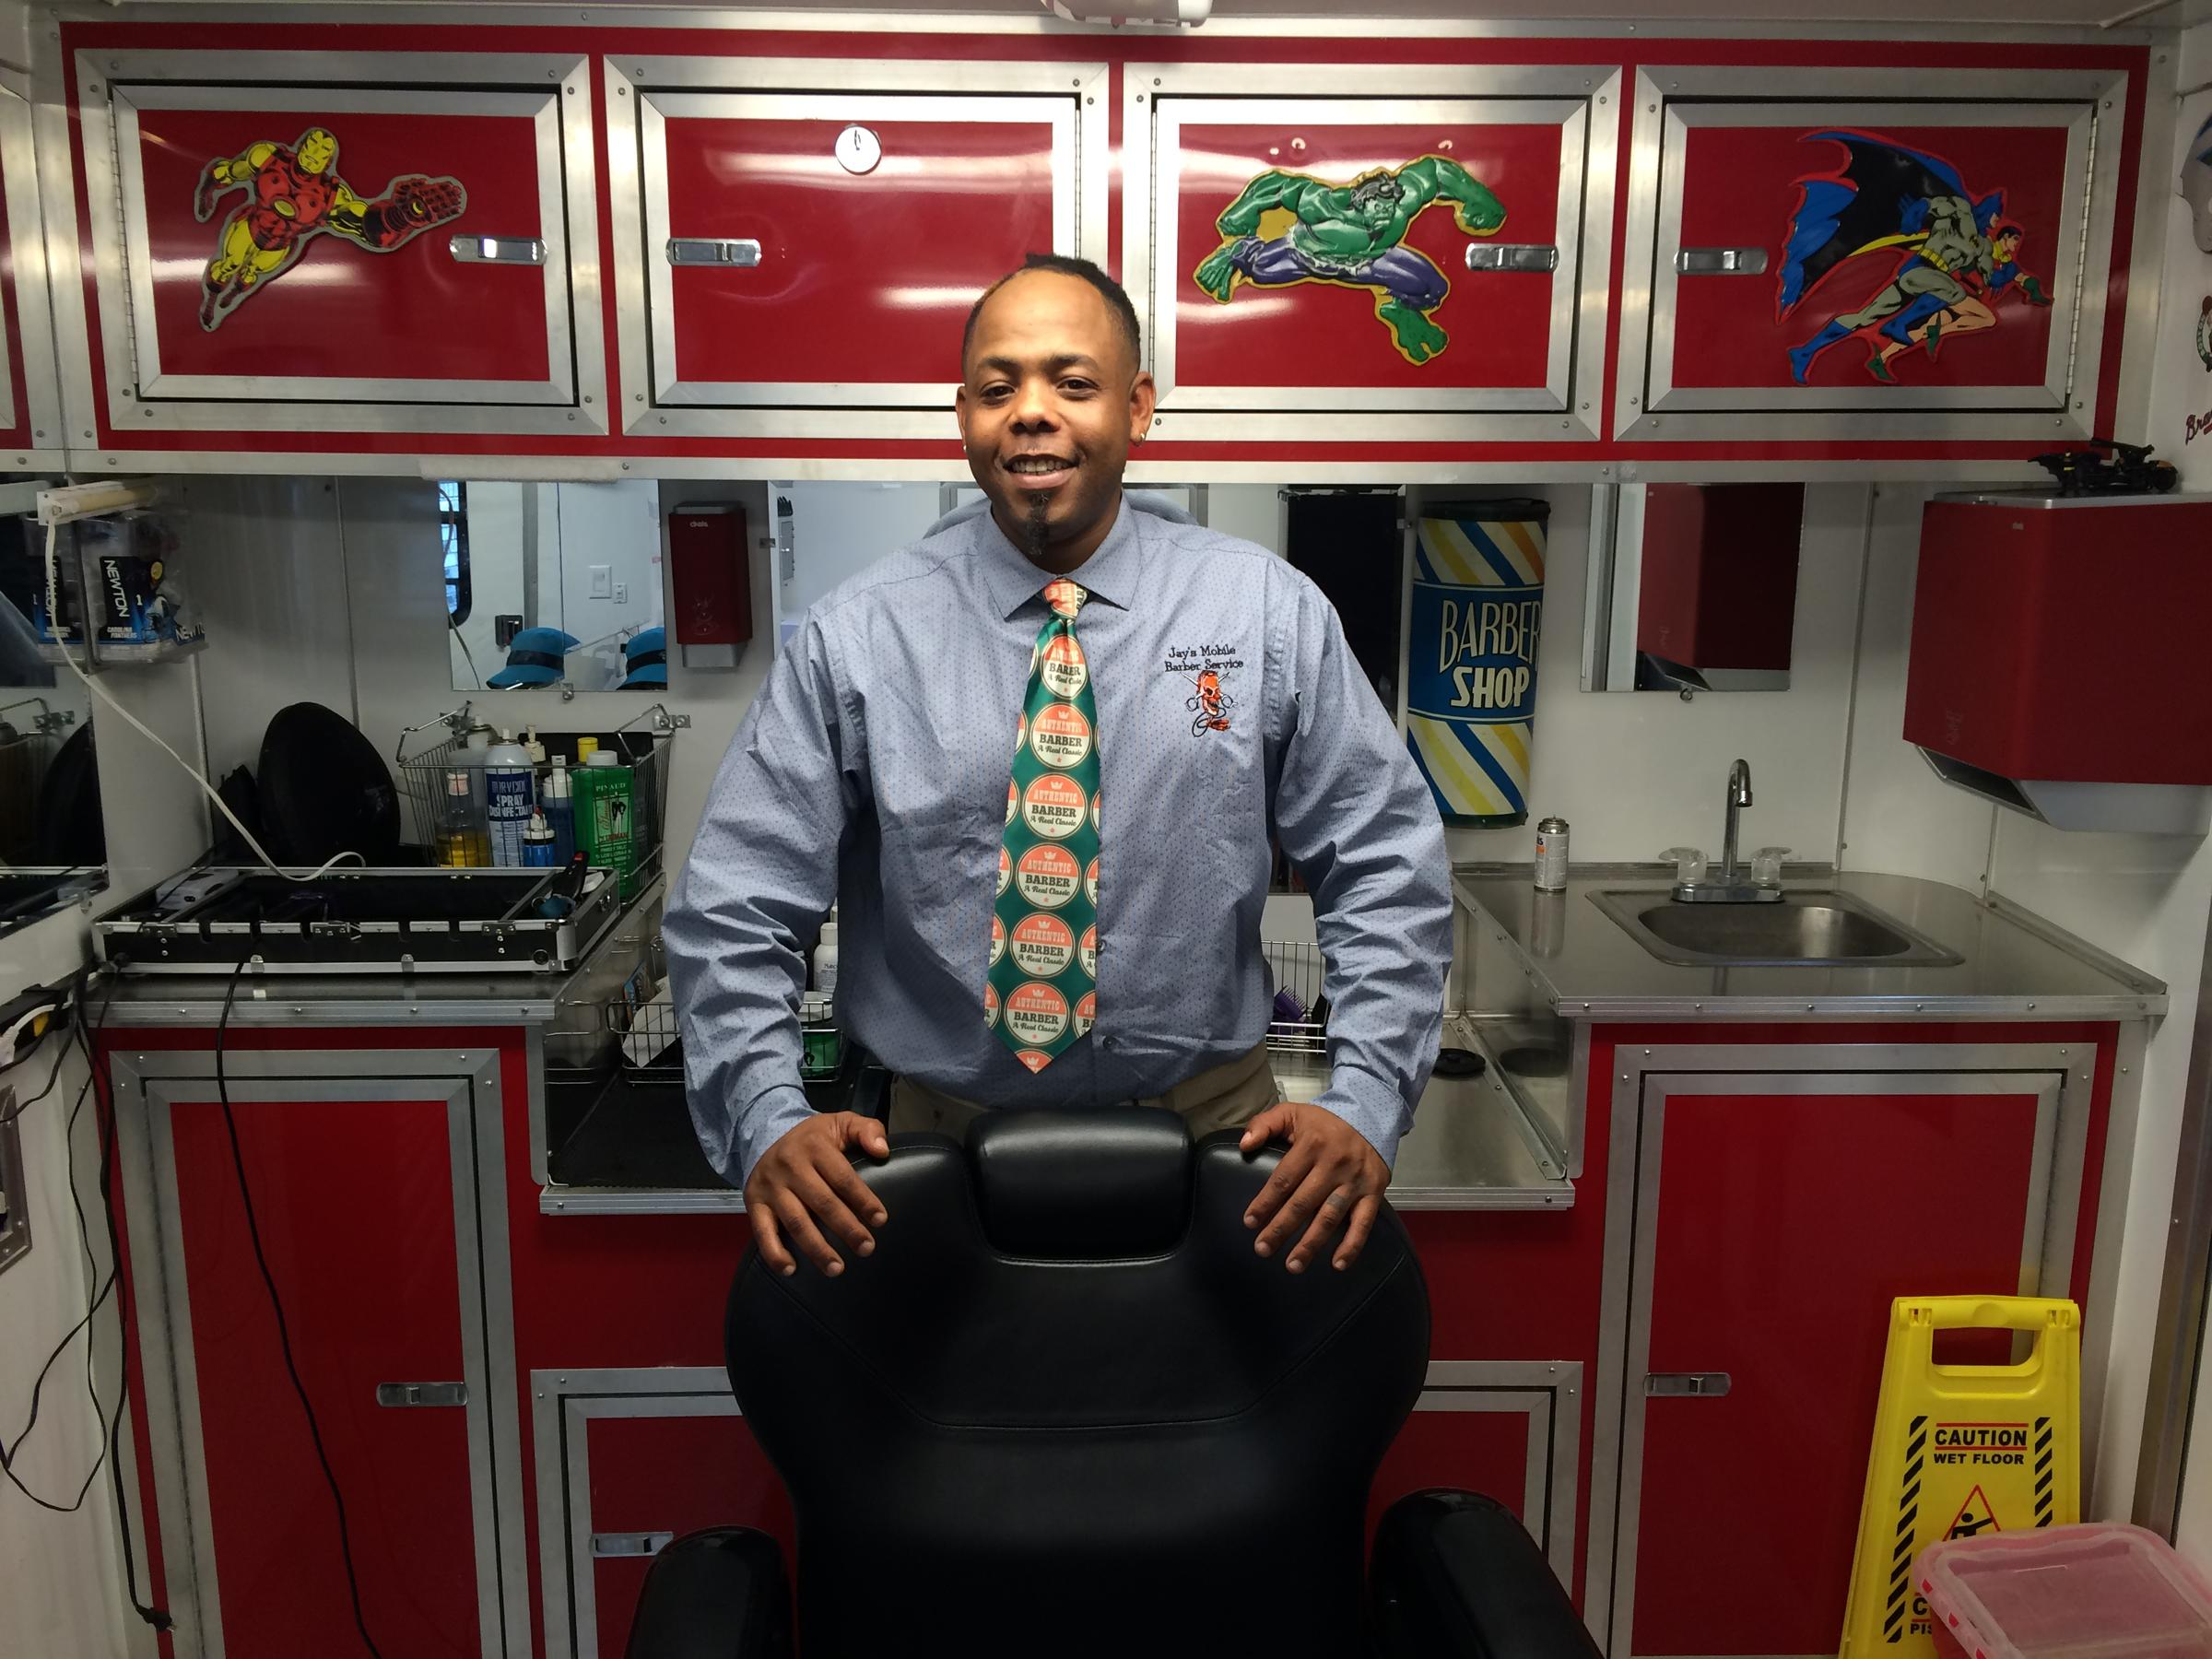 You Can Now Get Your Haircut To Go With Mobile Barbershops Kwbu